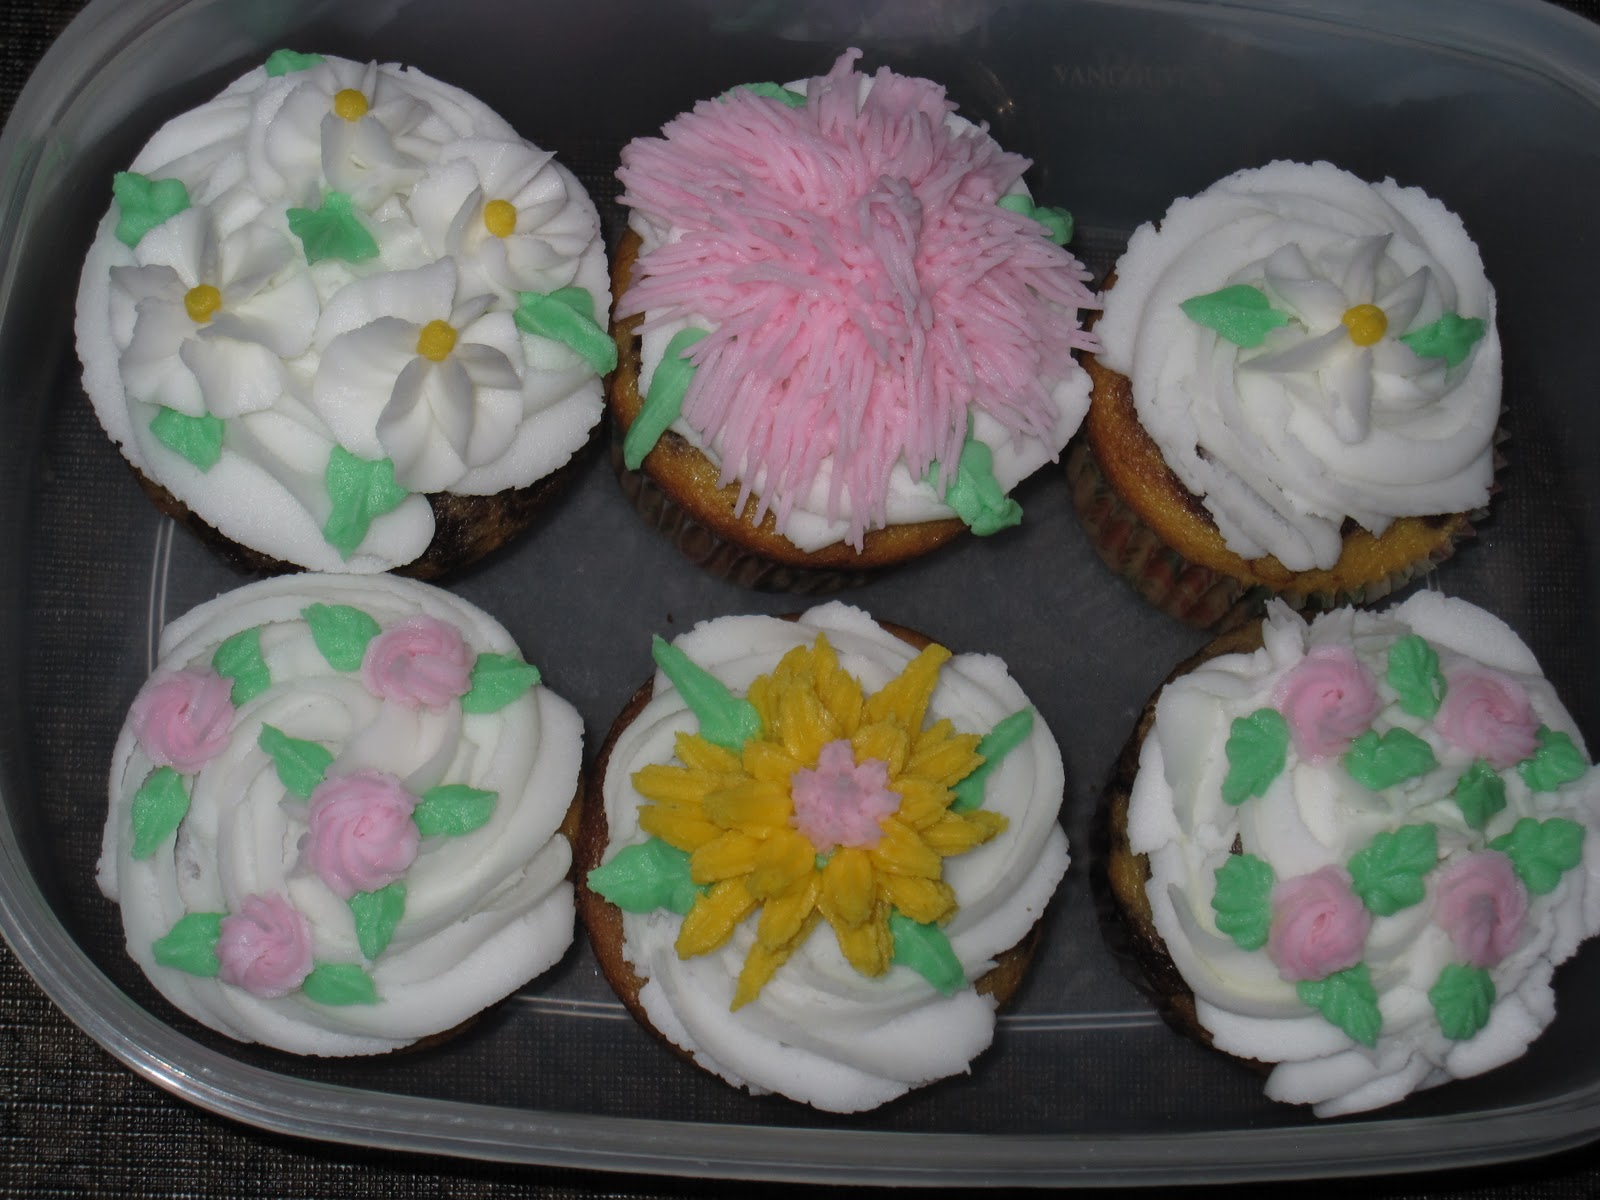 Cake Decorating Michaels Classes : michaels cake decorating class Billingsblessingbags.org